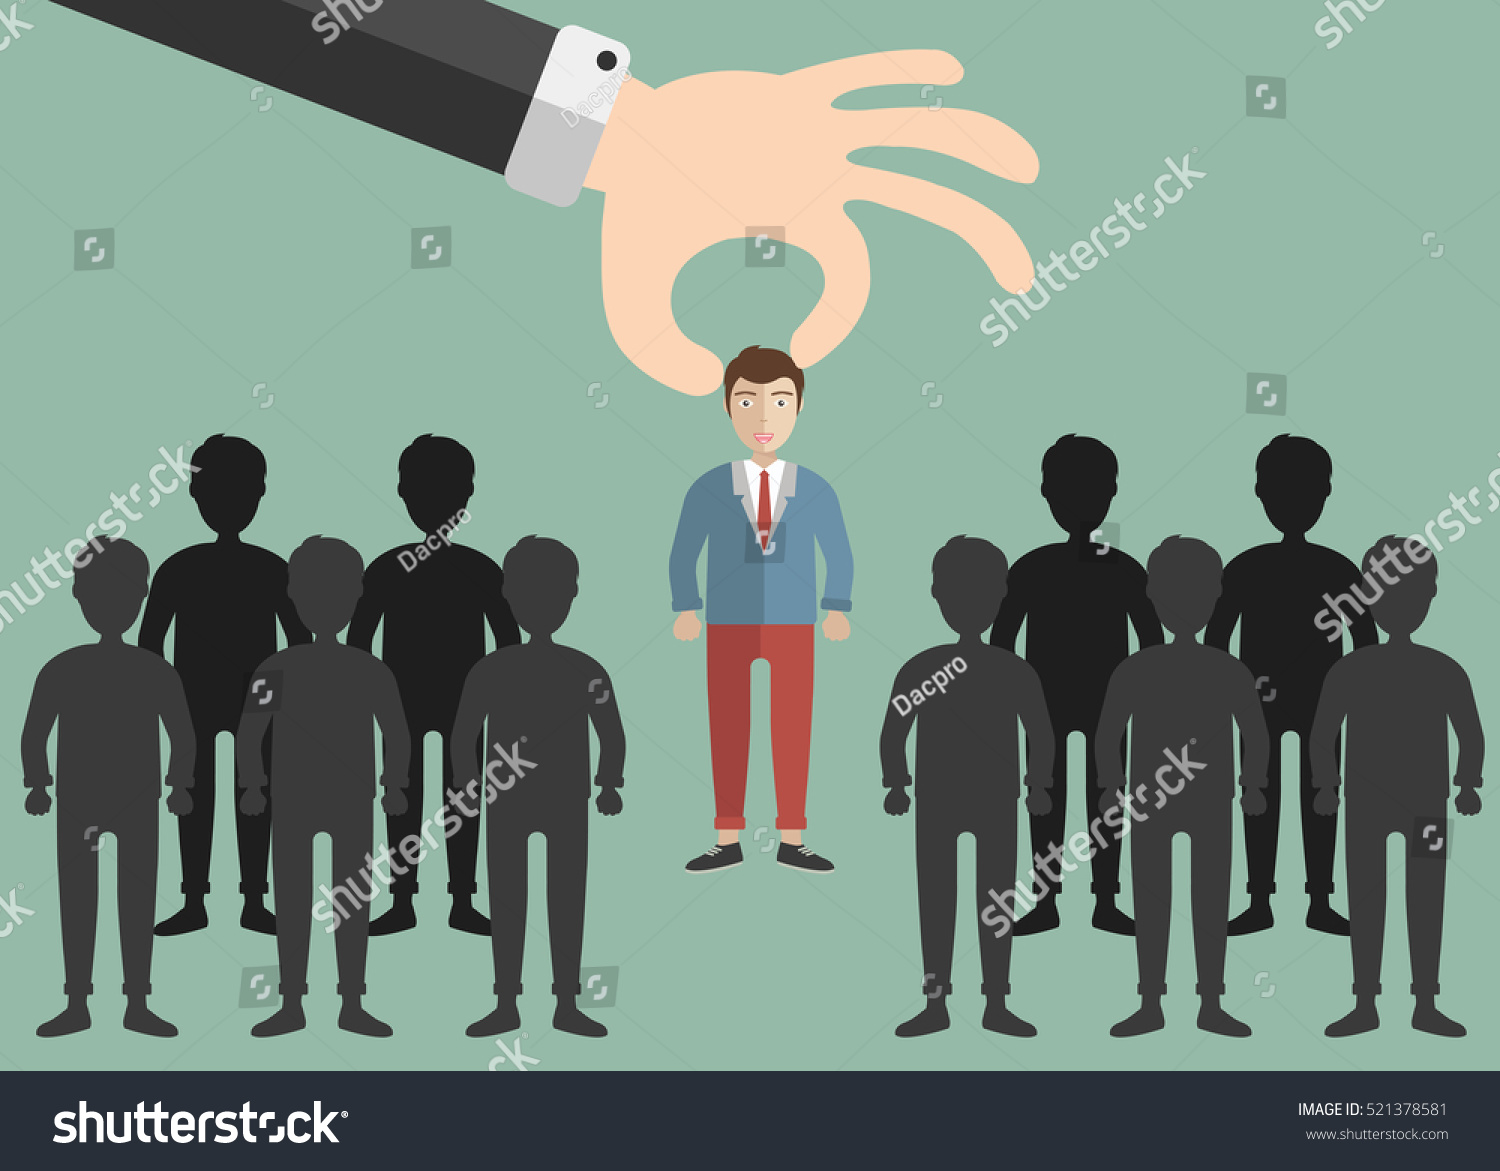 choosing best candidate job concept hand stock vector 521378581 choosing the best candidate for the job concept hand picking up a businessman from the